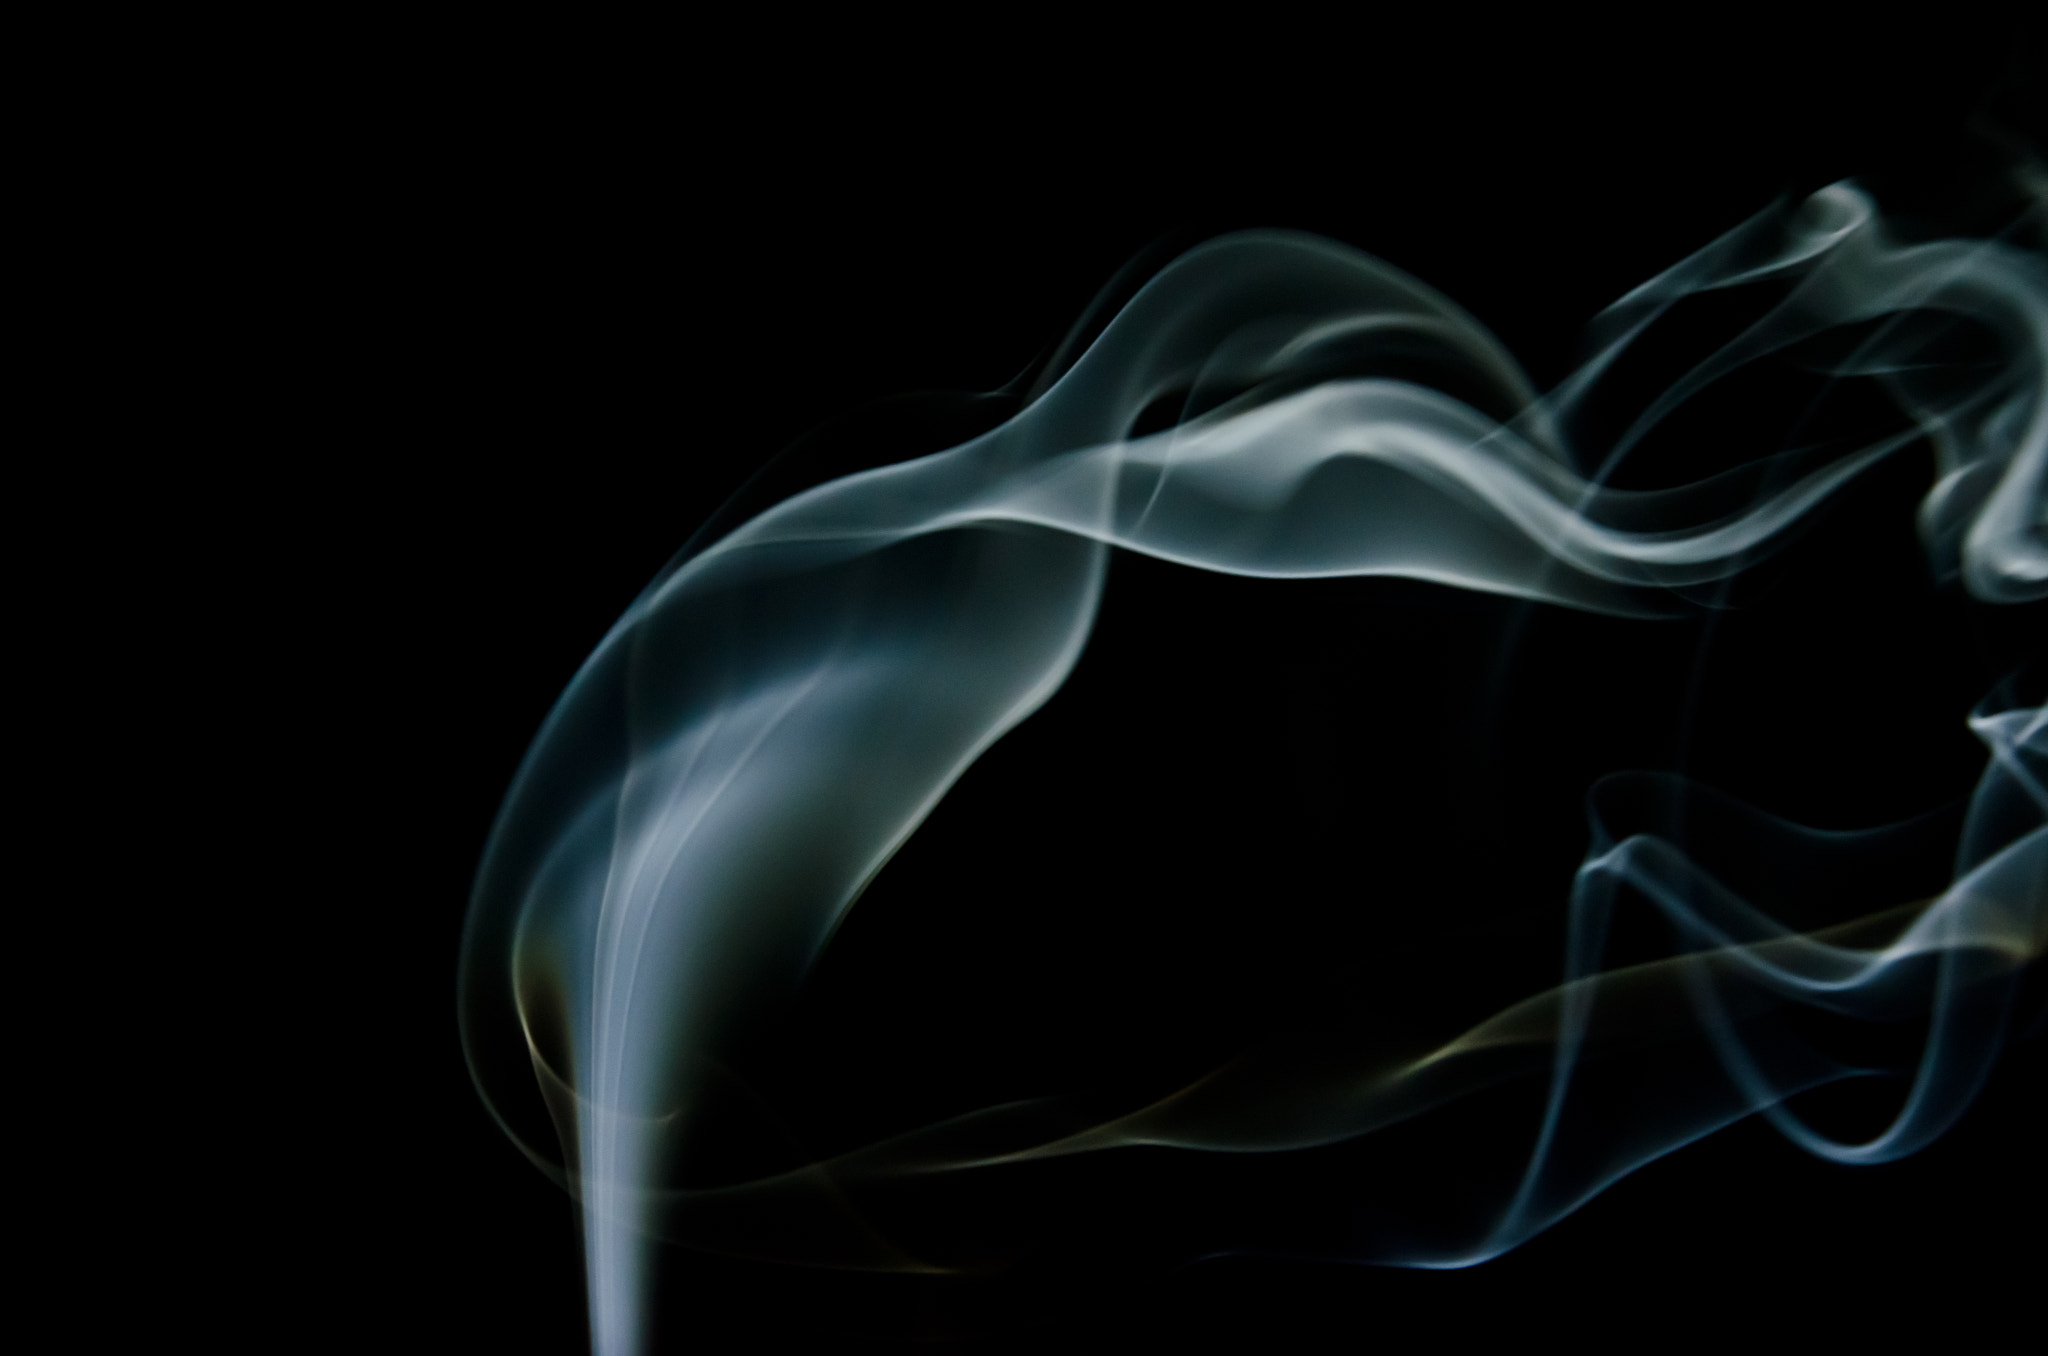 Photograph Smooth smoke by Mahmoud ElRefaie on 500px